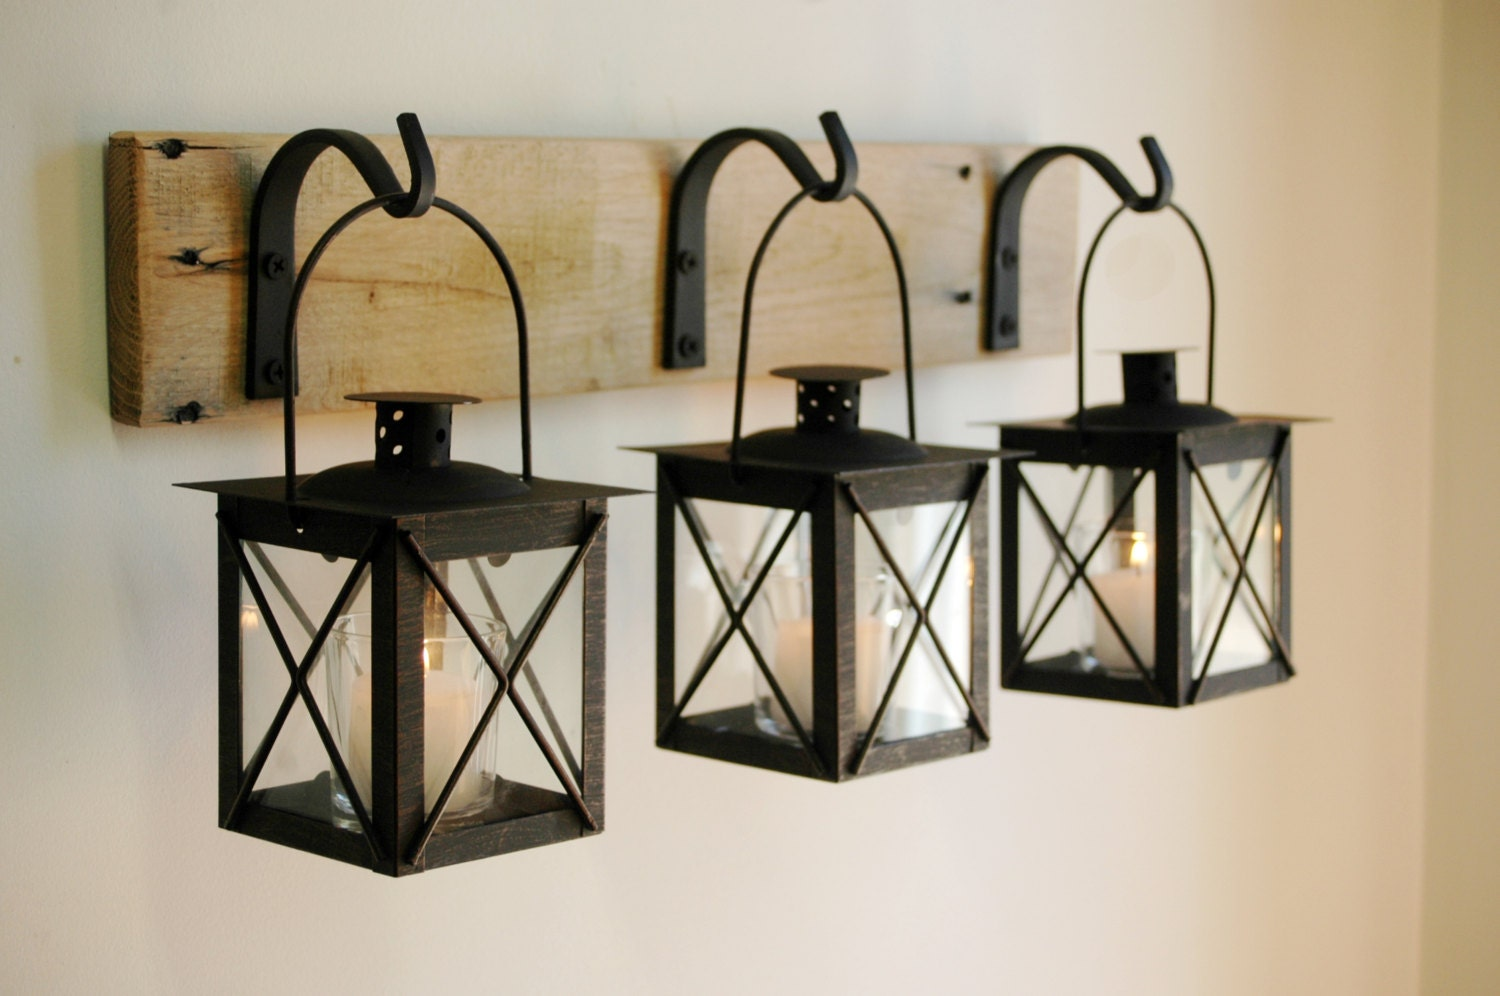 Black lantern trio wall decor home decor rustic decor Decorations for the home